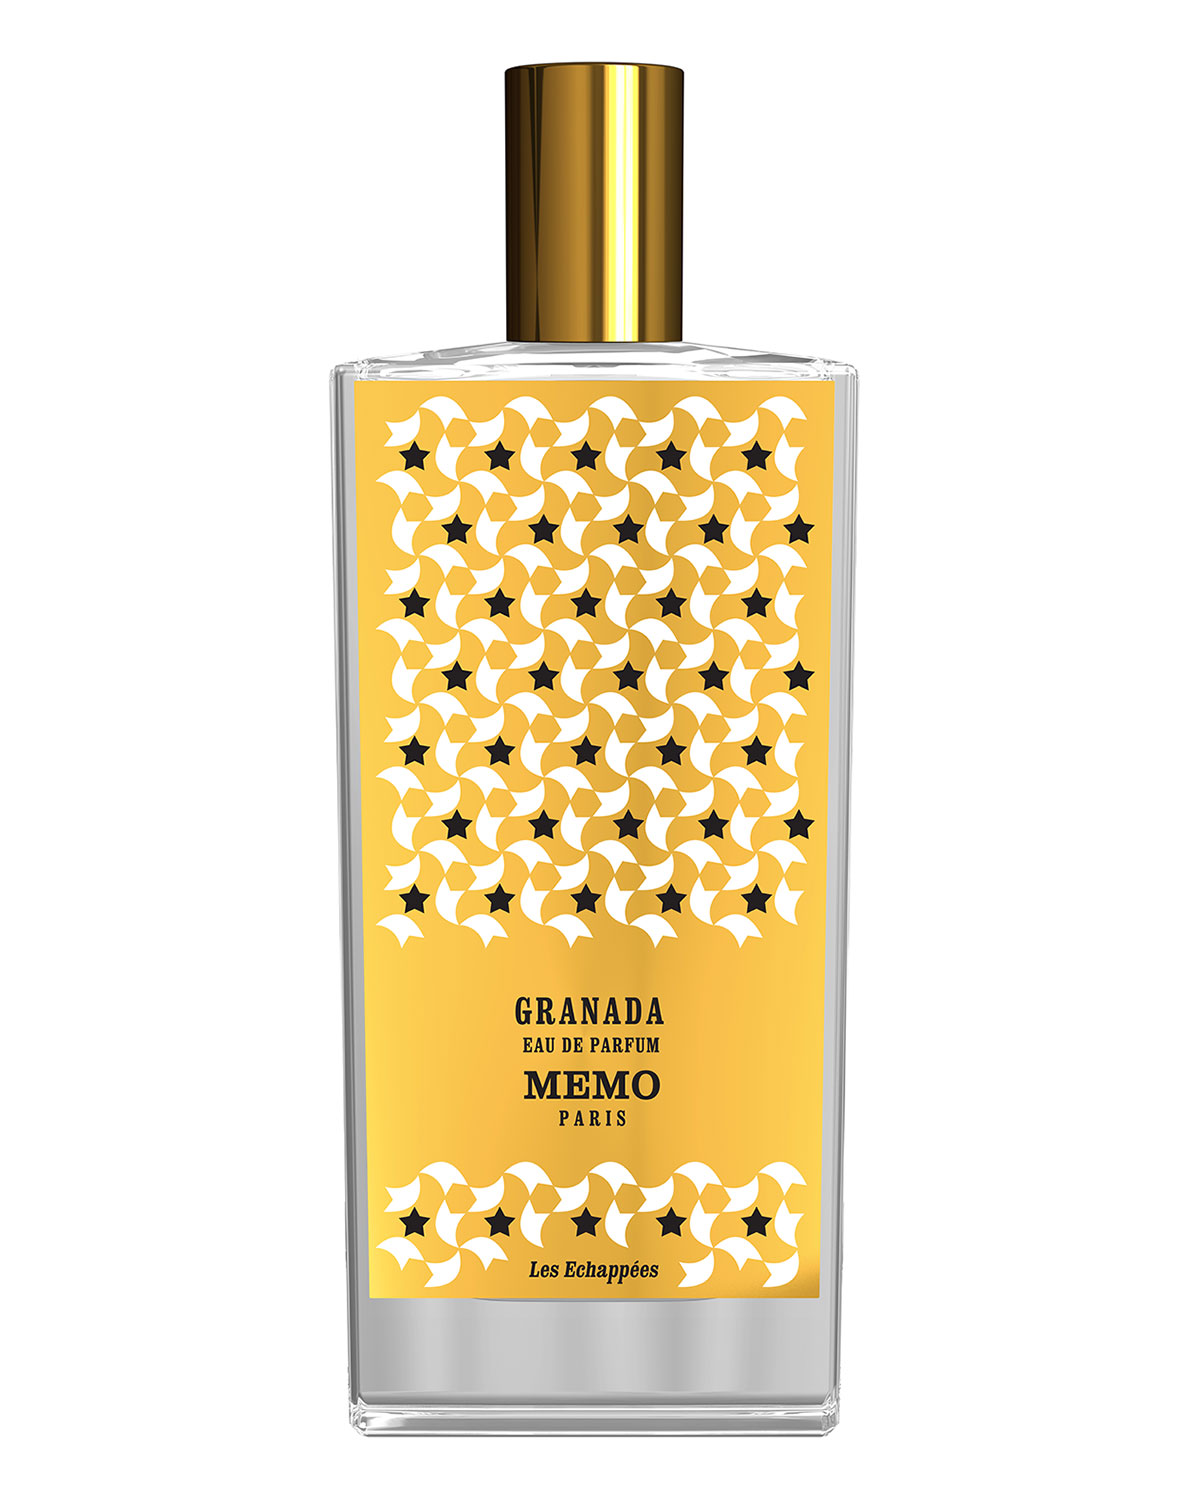 MEMO PARIS Granada Eau De Parfum Spray, 2.5 Oz./ 75 Ml